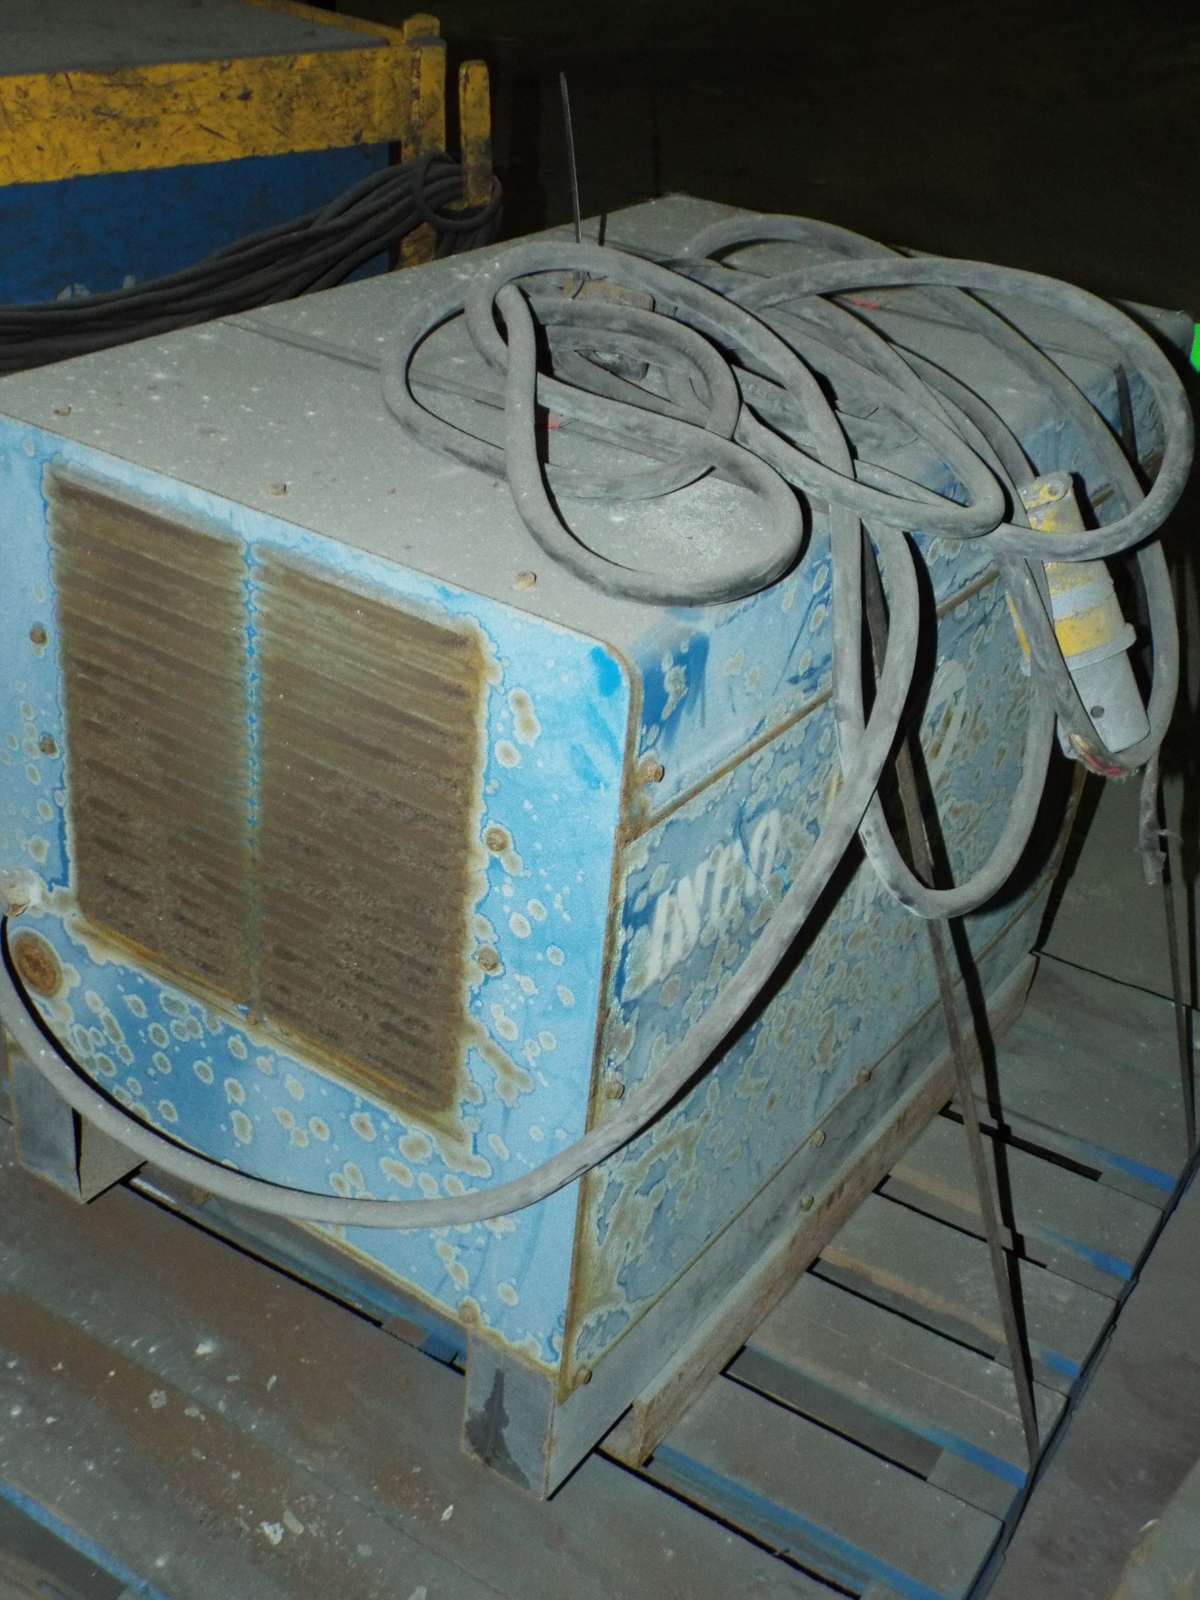 MILLER INTELLIWELD 650 WELDING POWER SOURCE WITH CABLES, S/N: N/A - Image 2 of 3